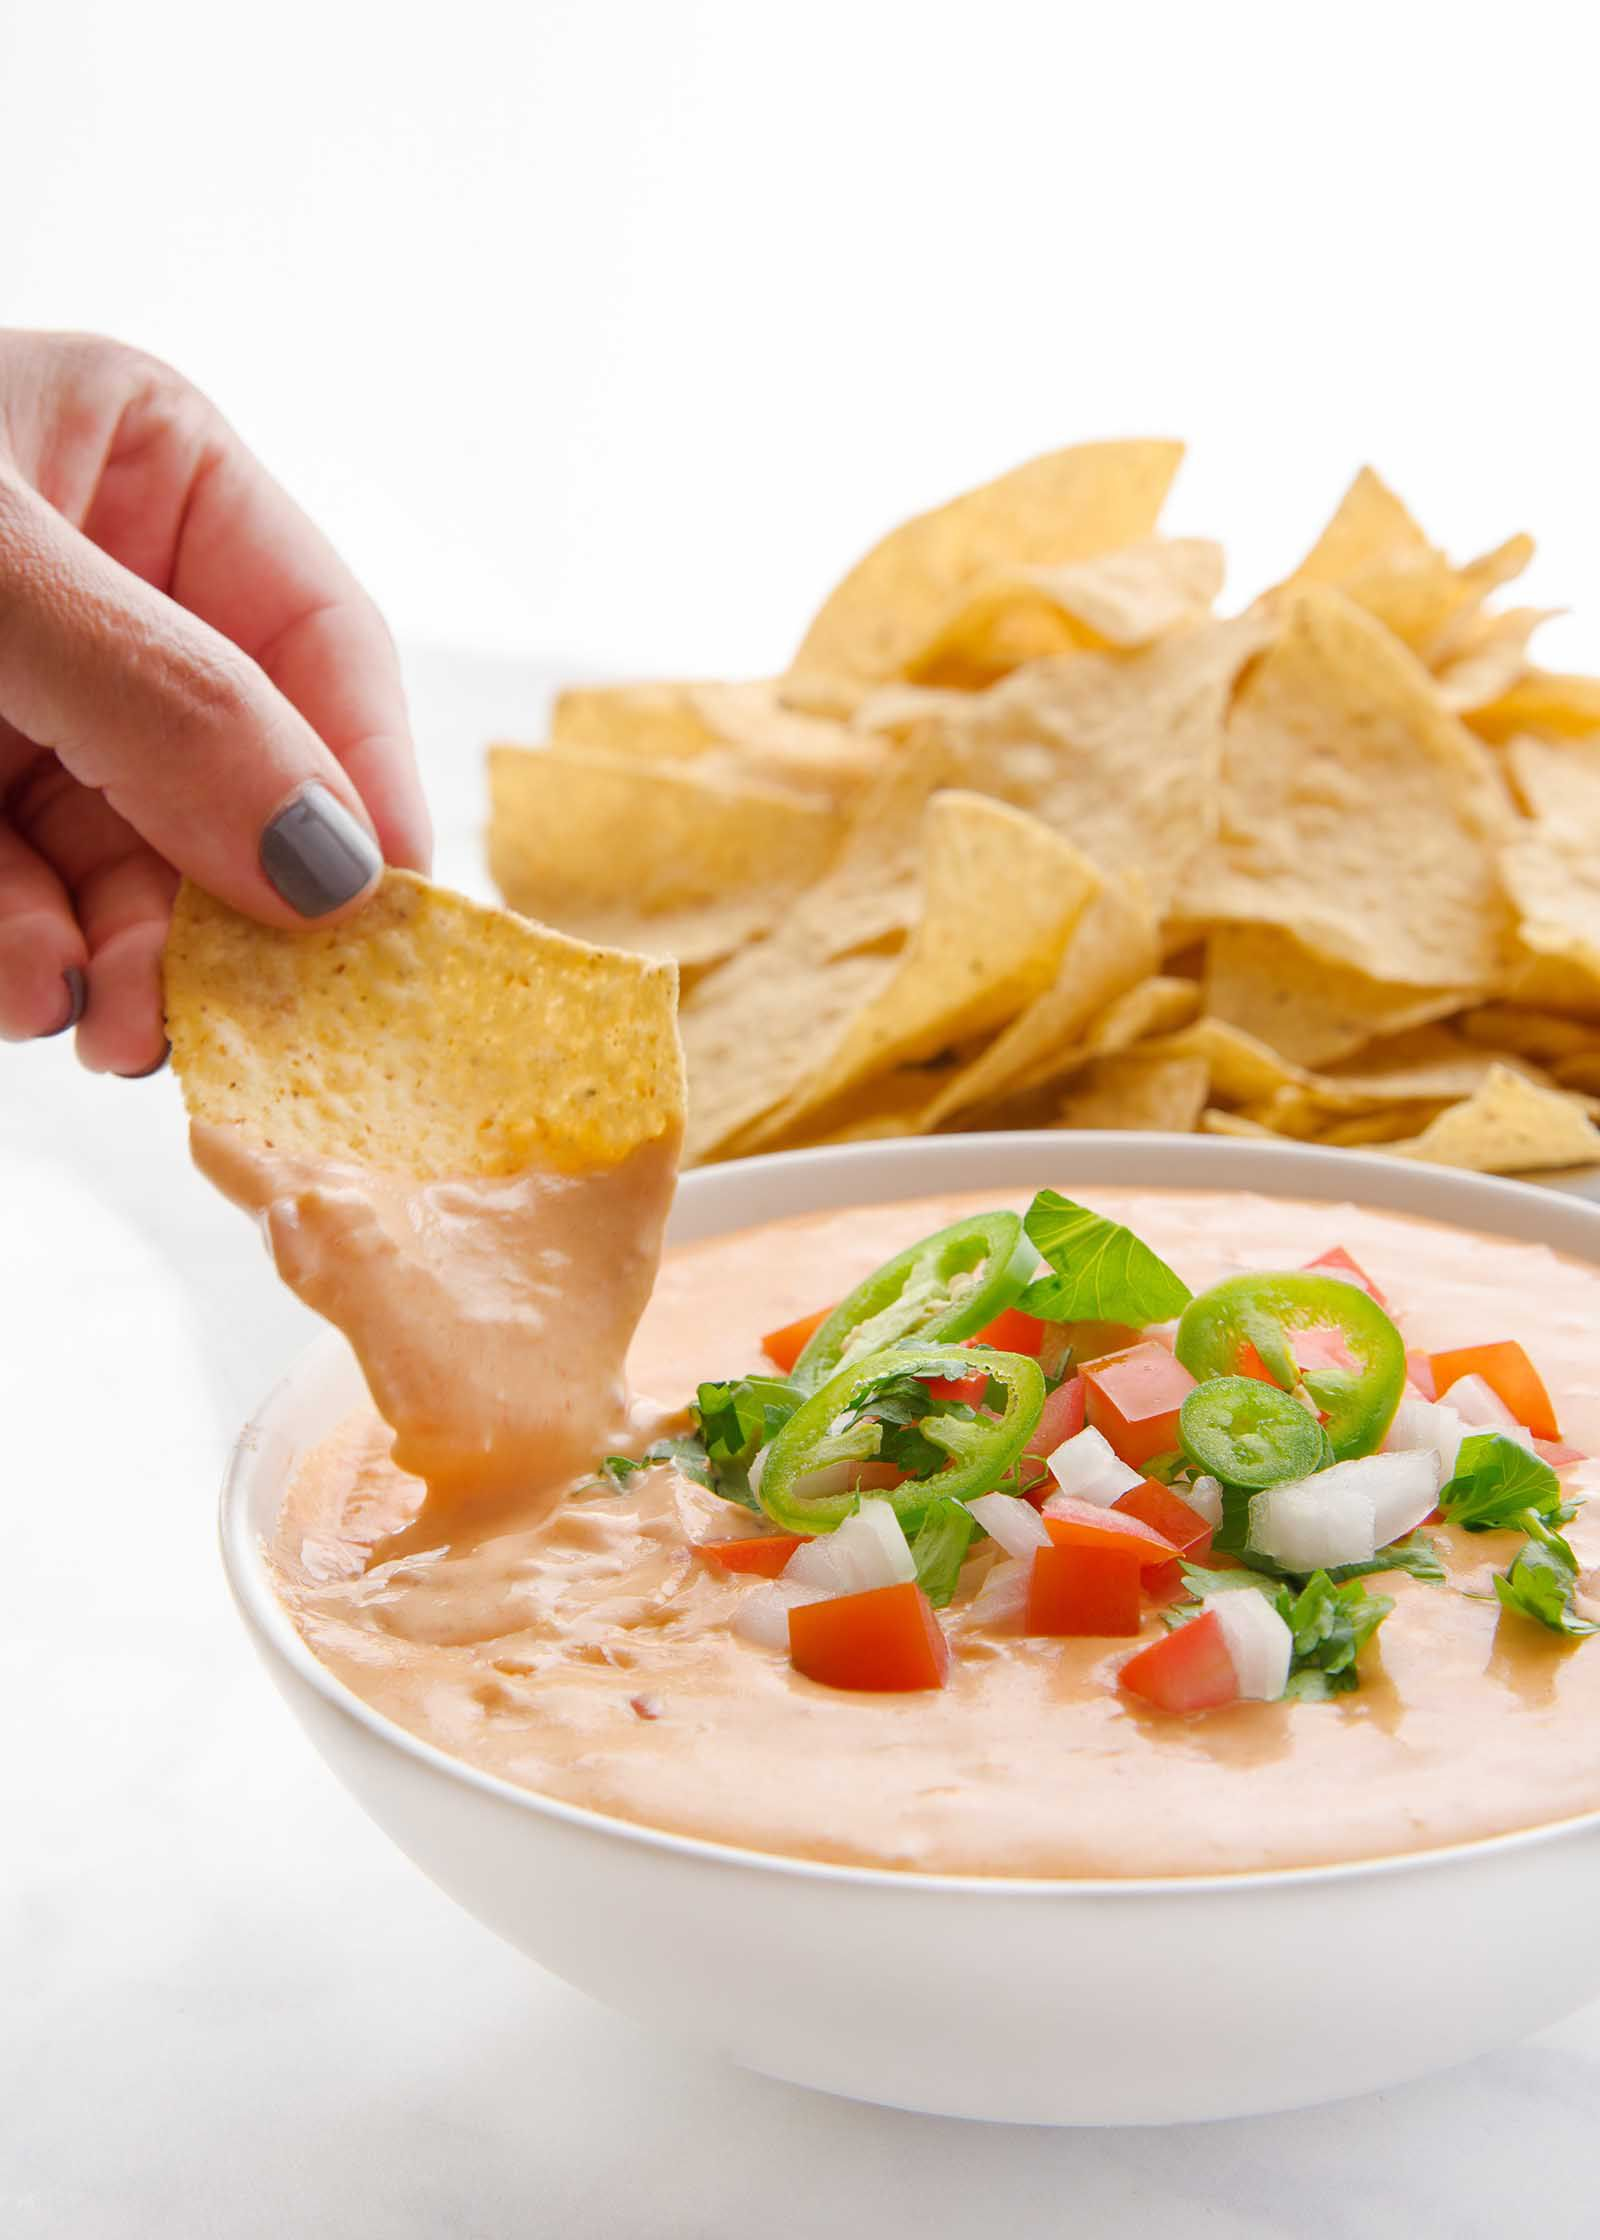 Hand scooping queso dip with pico de gallo and a bowl of tortilla chips nearby.